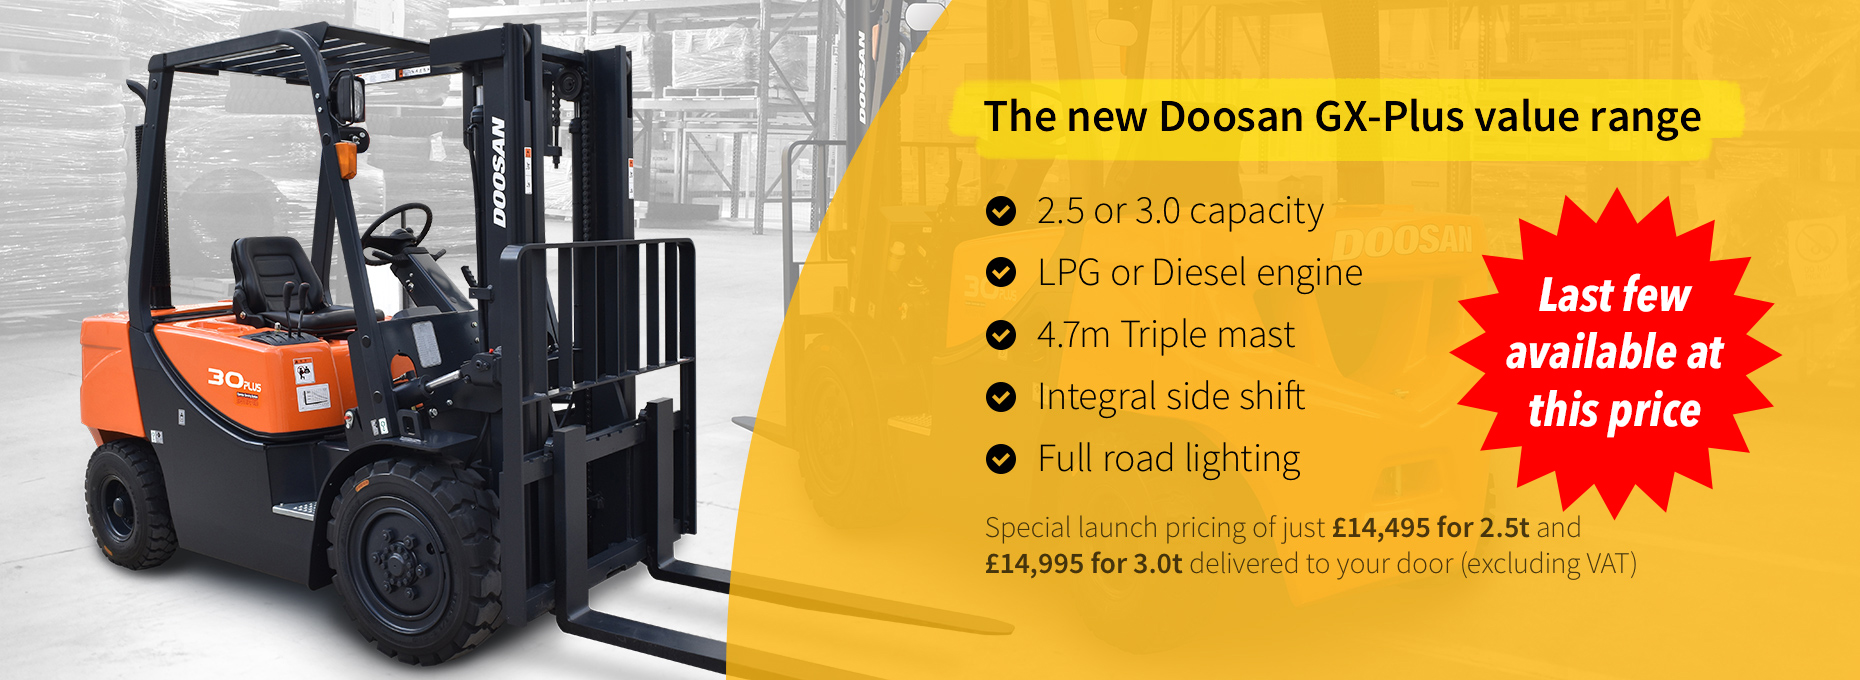 The new Doosan GX-Plus value range